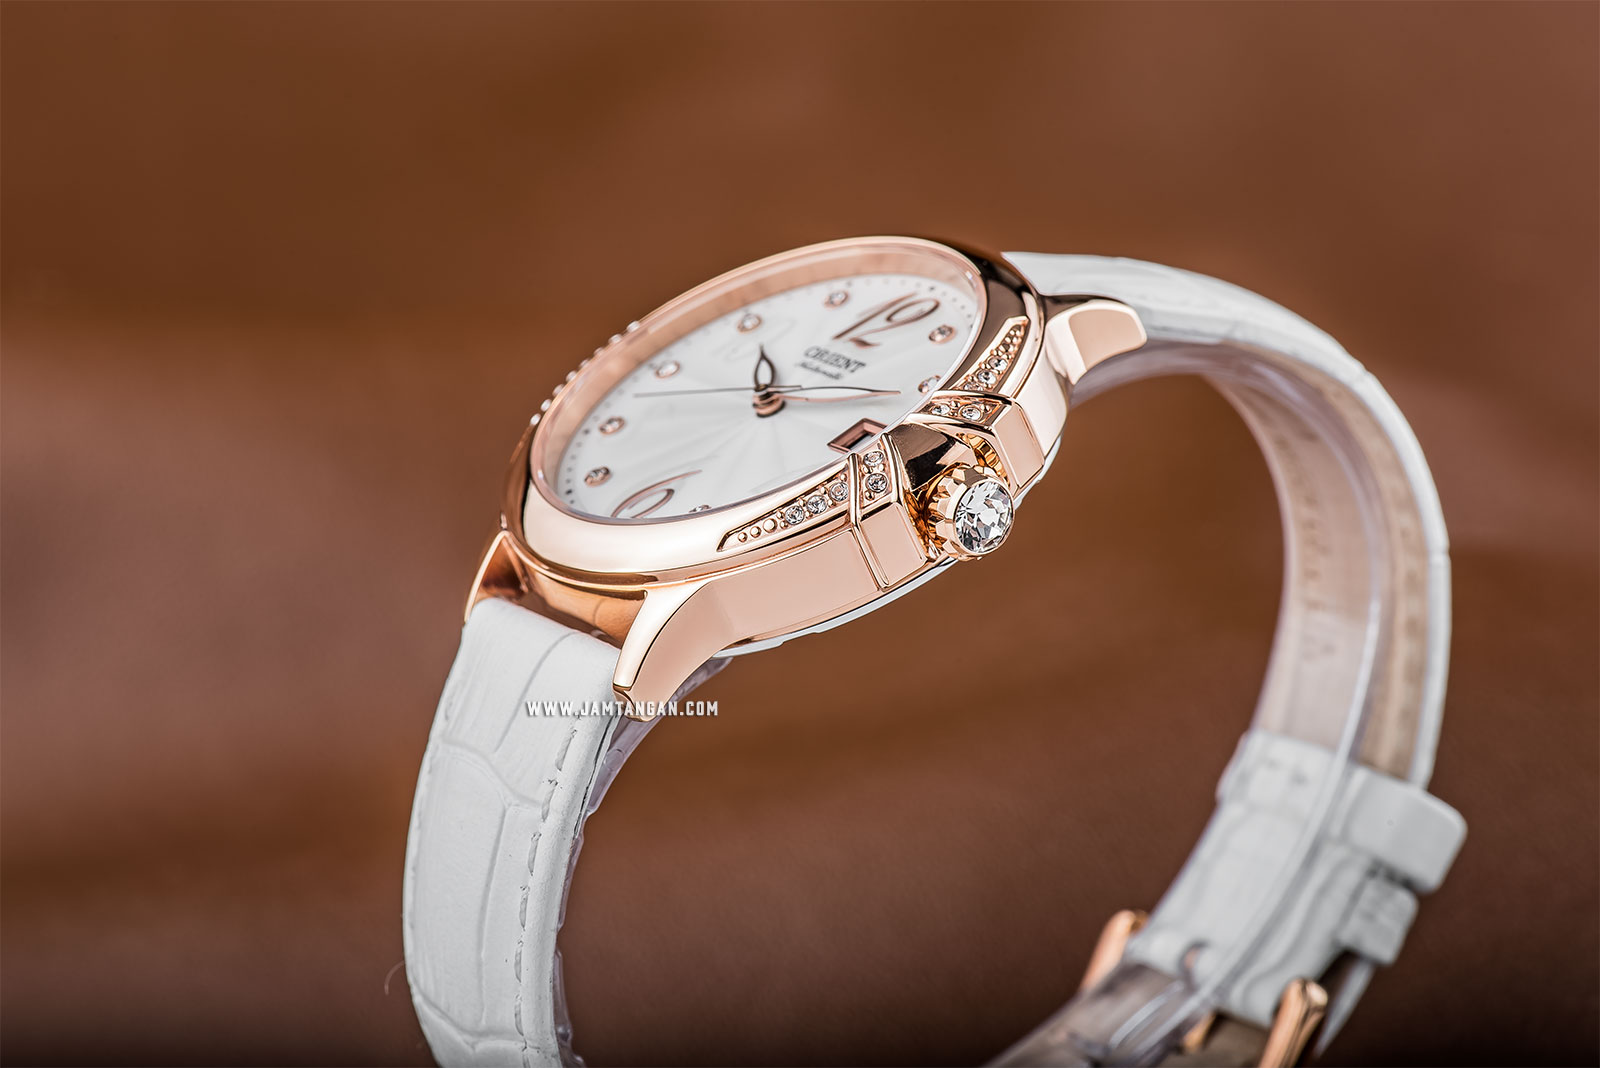 Orient FAC07002W Fashionable Automatic Elegance Ladies White Dial White Leather Strap Machtwatch